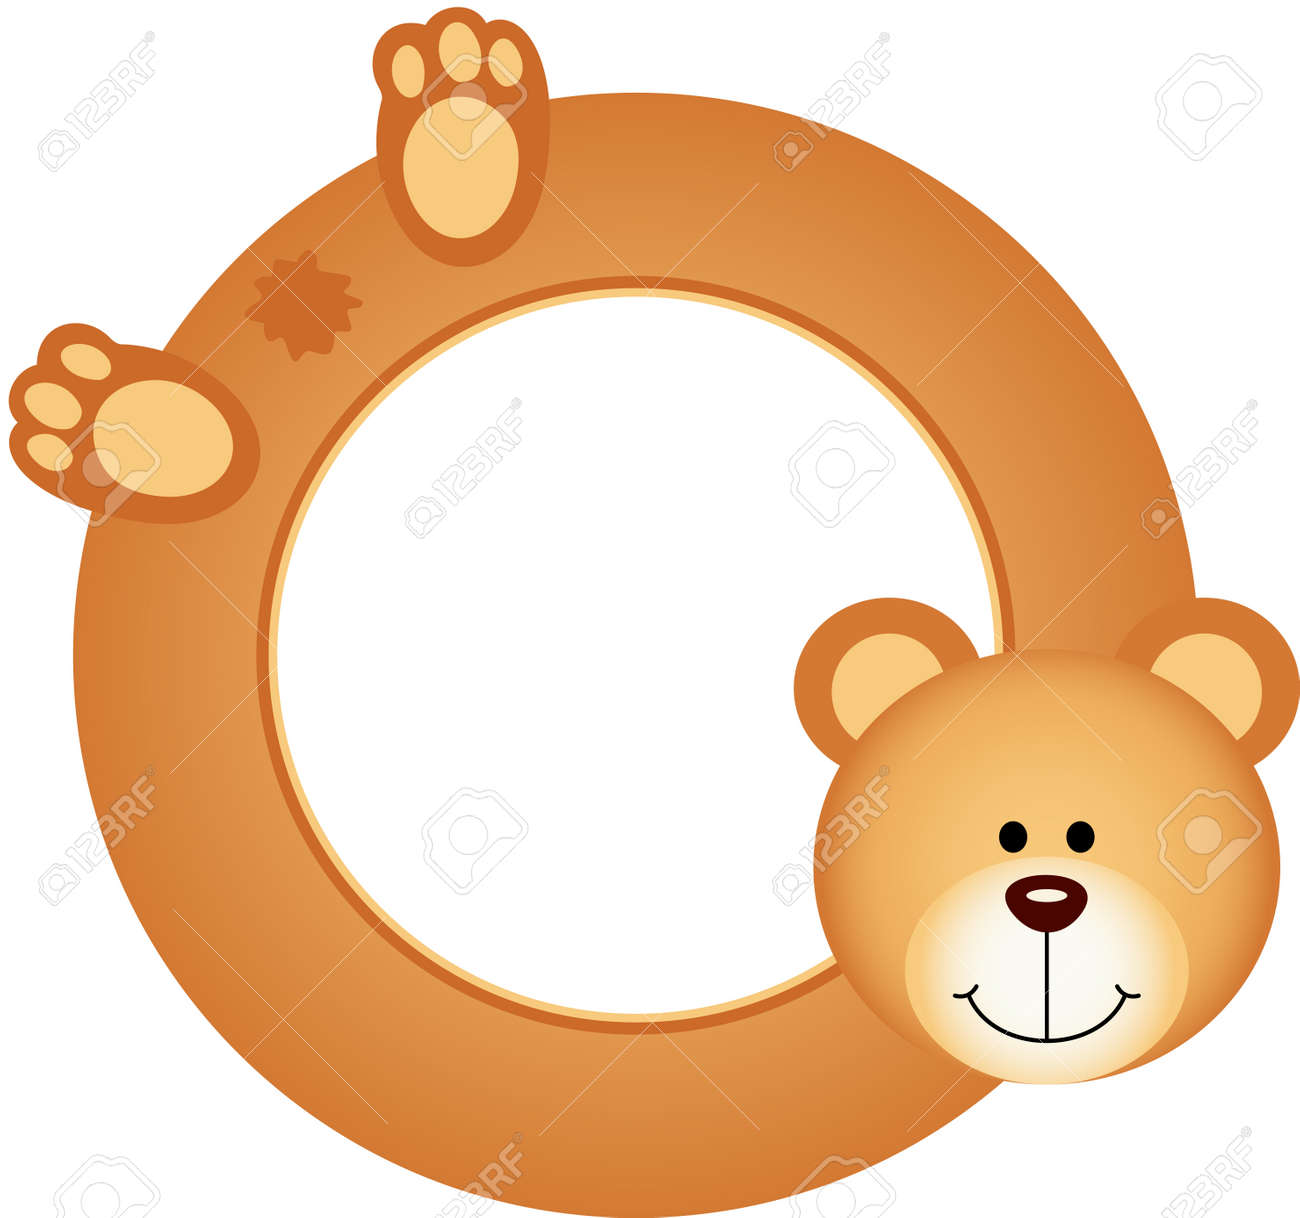 Teddy Bear Frame Royalty Free Cliparts, Vectors, And Stock ...